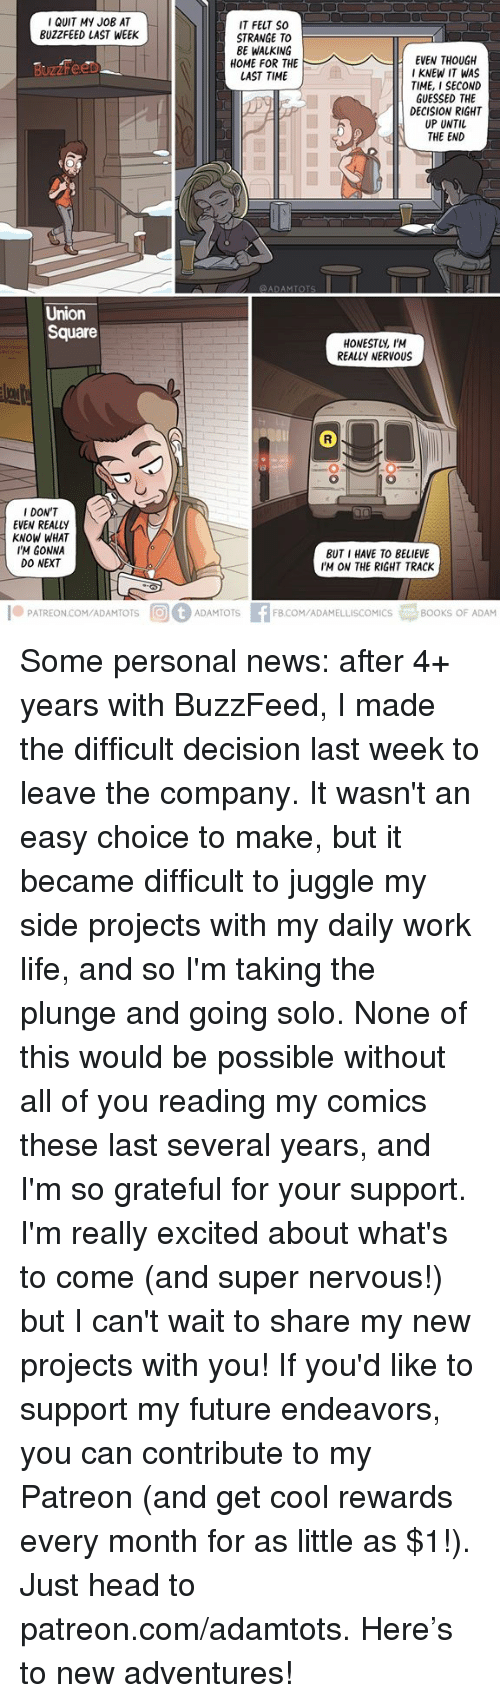 Really Excited: IQUIT MY JoB AT  BUZZFEED LAST WEEK  IT FELT SO  STRANGE TO  BE WALKING  HOME FOR THE  LAST TIME  I KNEW IT WAS  TIME, I SECOND  GUESSED THE  DECISION RIGHT  UP UNTIL  THE END  Union  Square  HONESTUY, I'M  REALLY NERVOUS  I DON'T  EVEN REALLY  KNOW WHAT  I'M GONNA  DO NEXT  BUT I HAVE TO BELIEVE  IM ON THE RIGHT TRACK  1.PATREON.COM/ADAMTOTS间@ ADAMTOTS  3BOOKS OF ADAM  FB.COM/ADAMELLISCOMICS Some personal news: after 4+ years with BuzzFeed, I made the difficult decision last week to leave the company. It wasn't an easy choice to make, but it became difficult to juggle my side projects with my daily work life, and so I'm taking the plunge and going solo. None of this would be possible without all of you reading my comics these last several years, and I'm so grateful for your support. I'm really excited about what's to come (and super nervous!) but I can't wait to share my new projects with you! If you'd like to support my future endeavors, you can contribute to my Patreon (and get cool rewards every month for as little as $1!). Just head to patreon.com/adamtots. Here's to new adventures!